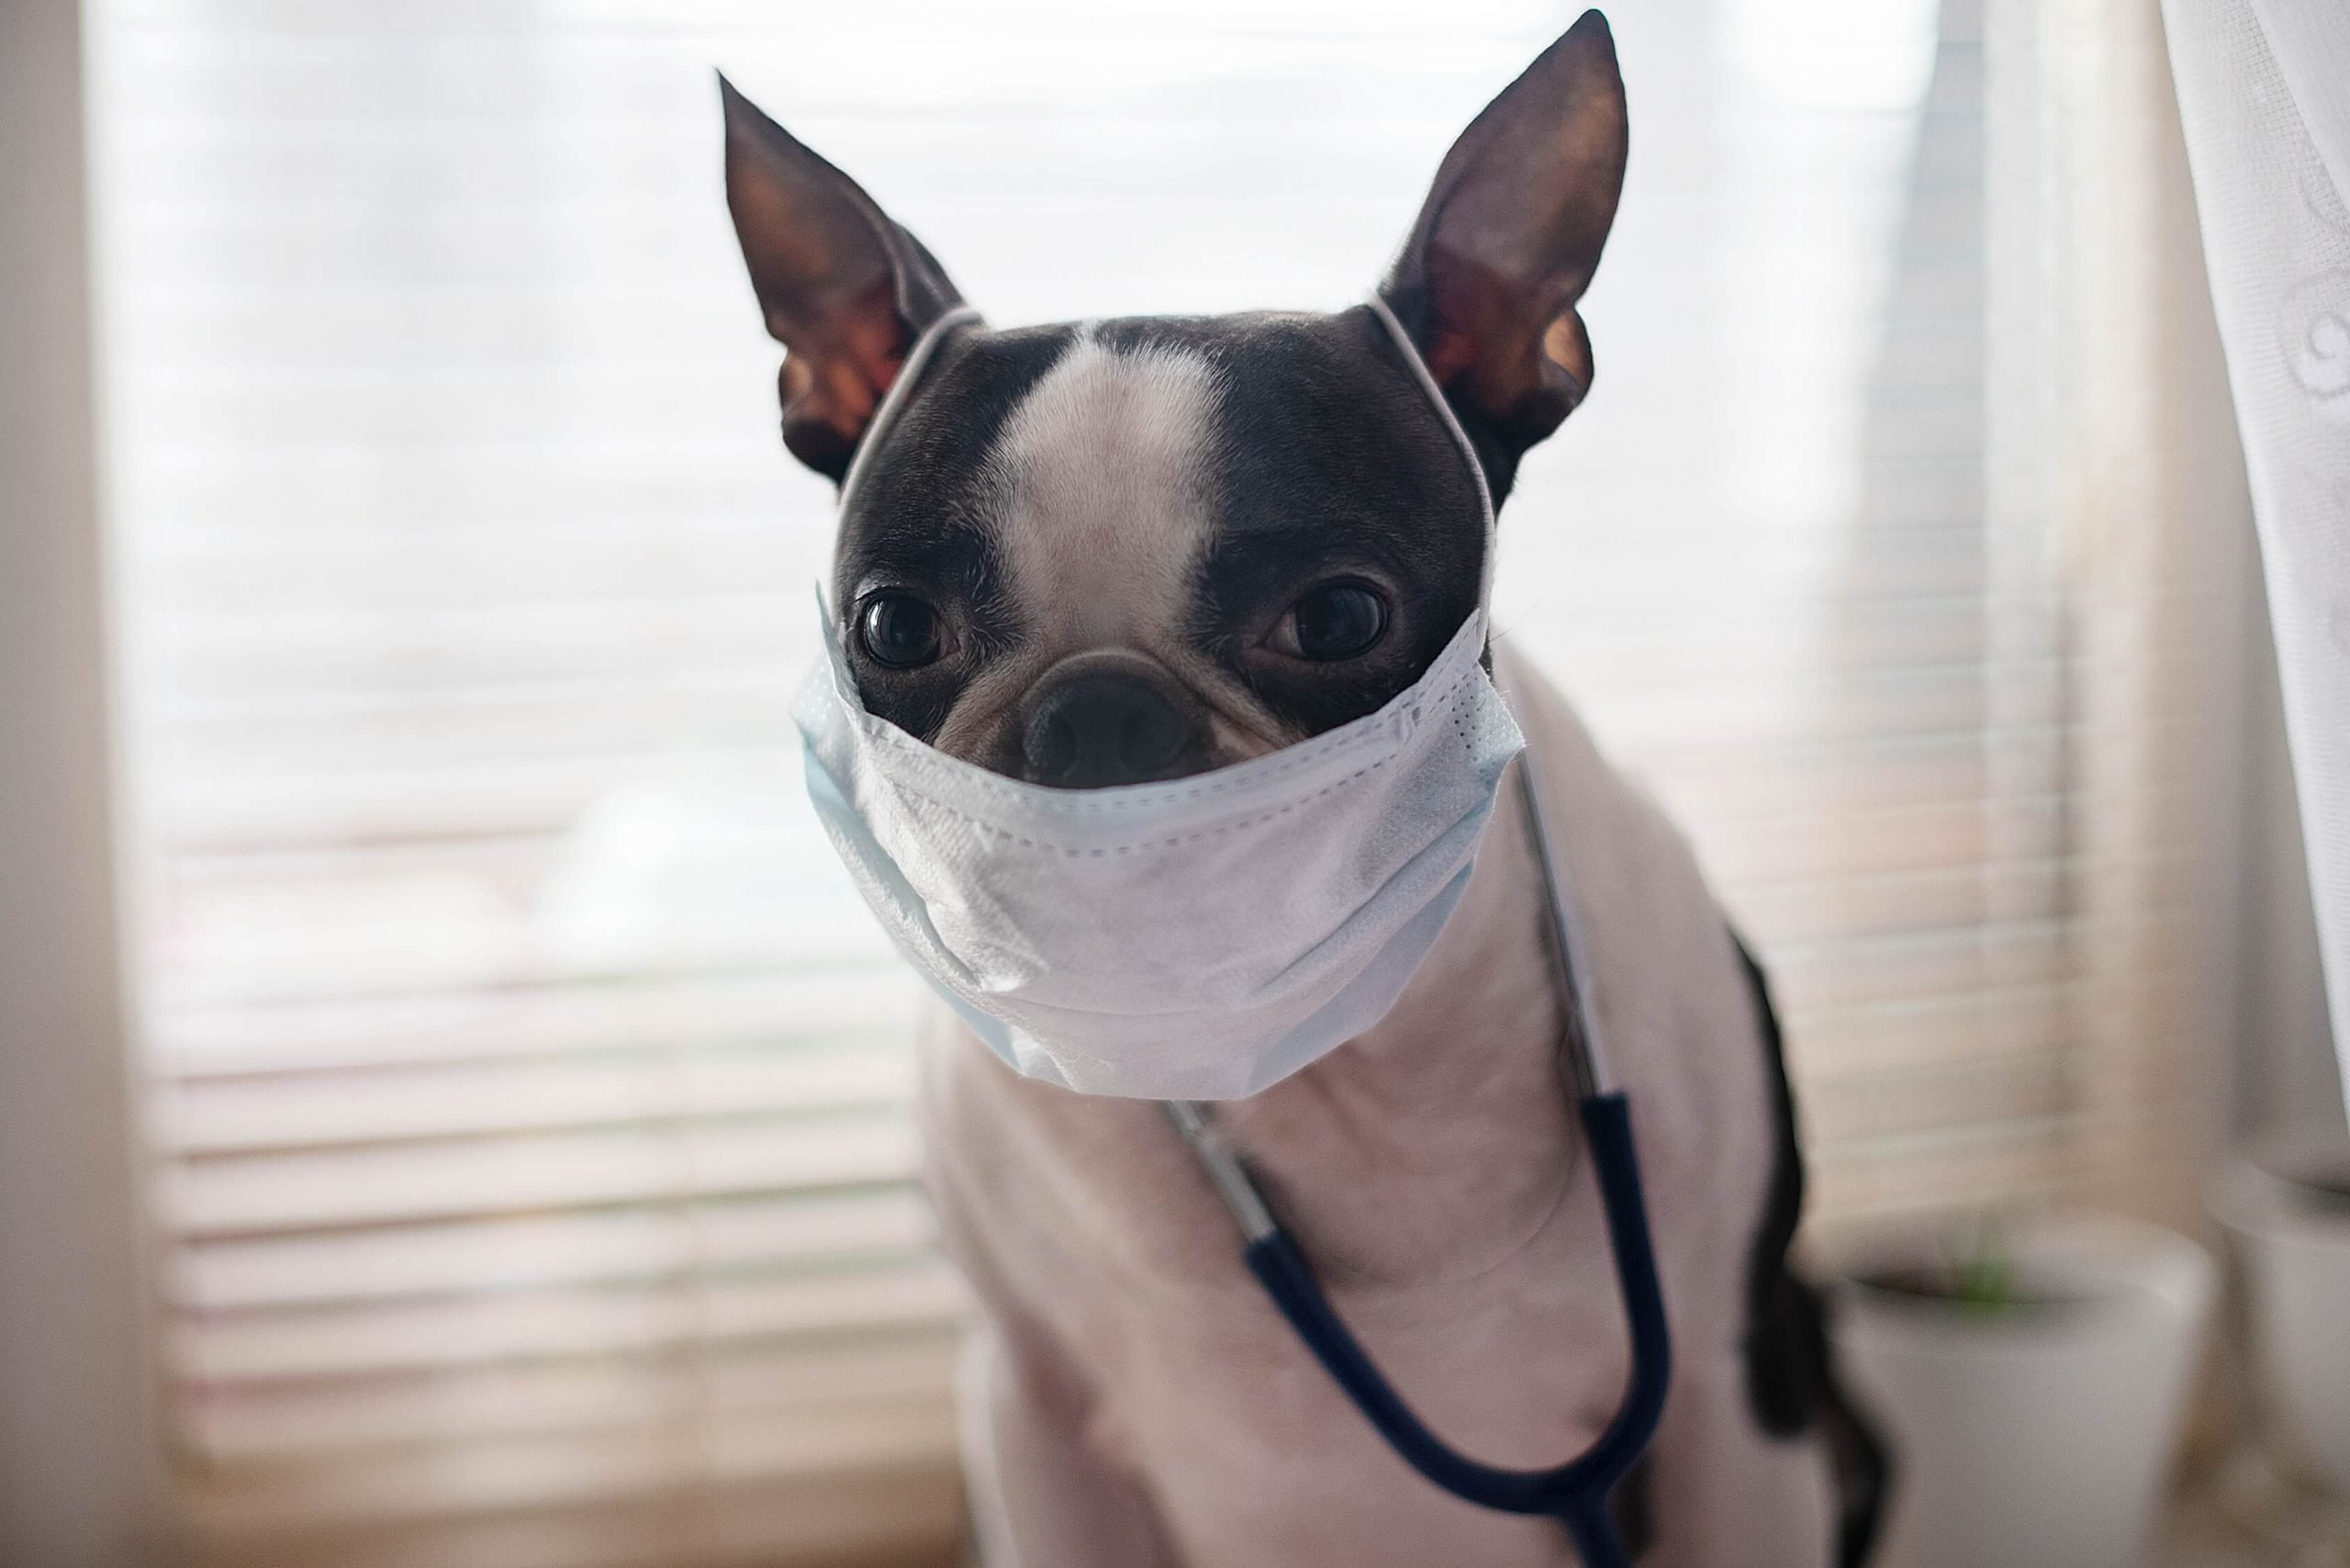 Boston Terrier dog wearing a mask and stethoscope